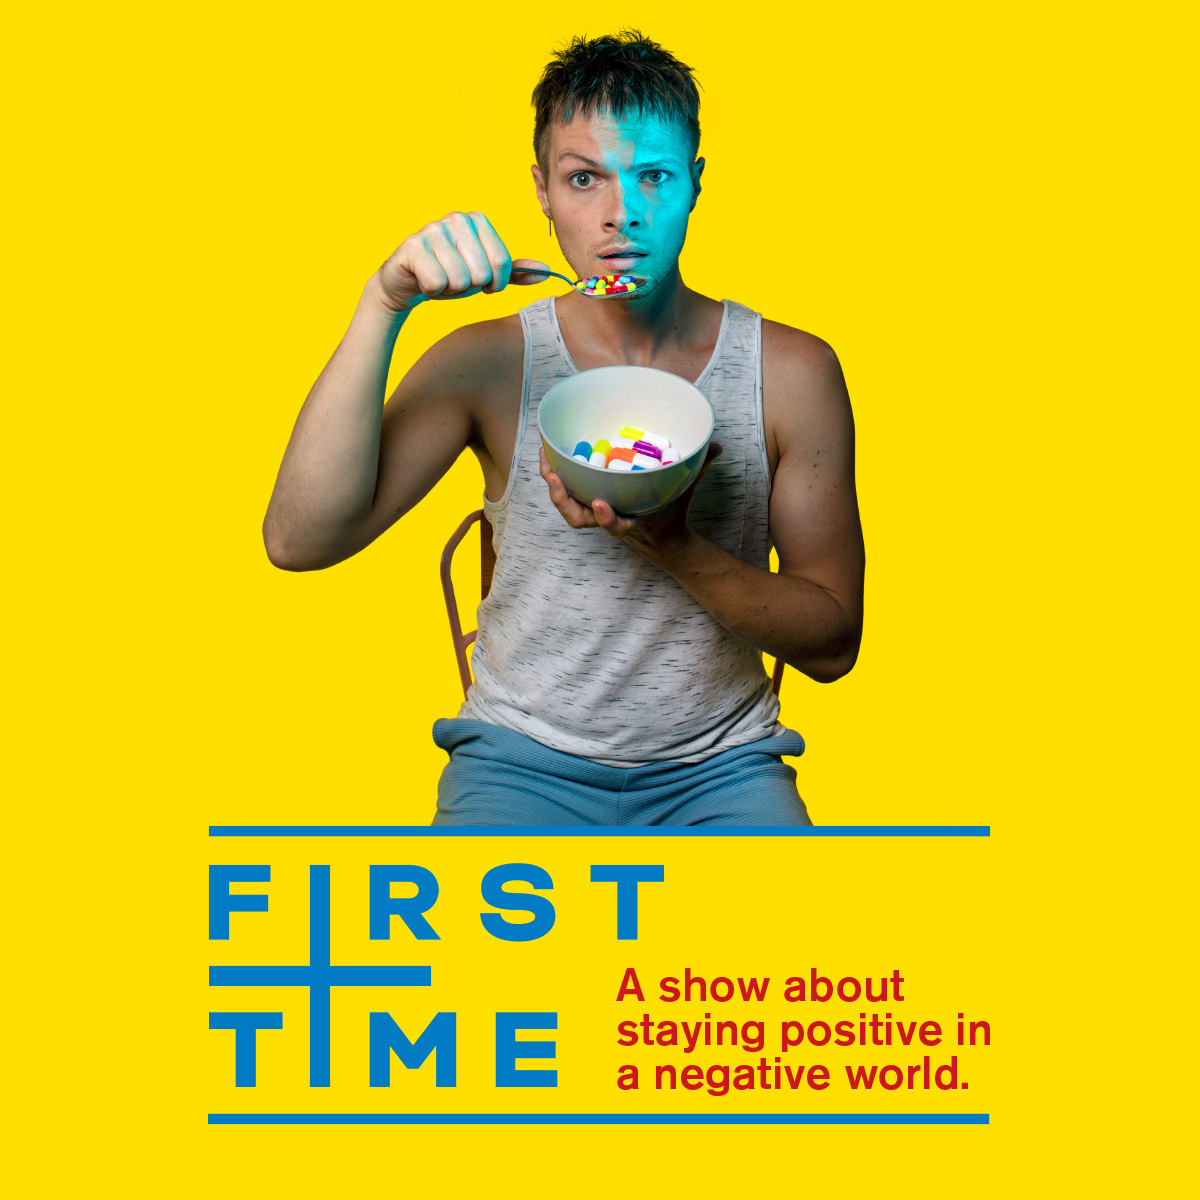 FIRST TIME will be a disturbing  show about the true story of a young man called Nathaniel who contracts HIV the first time he has sex at the age of 16.